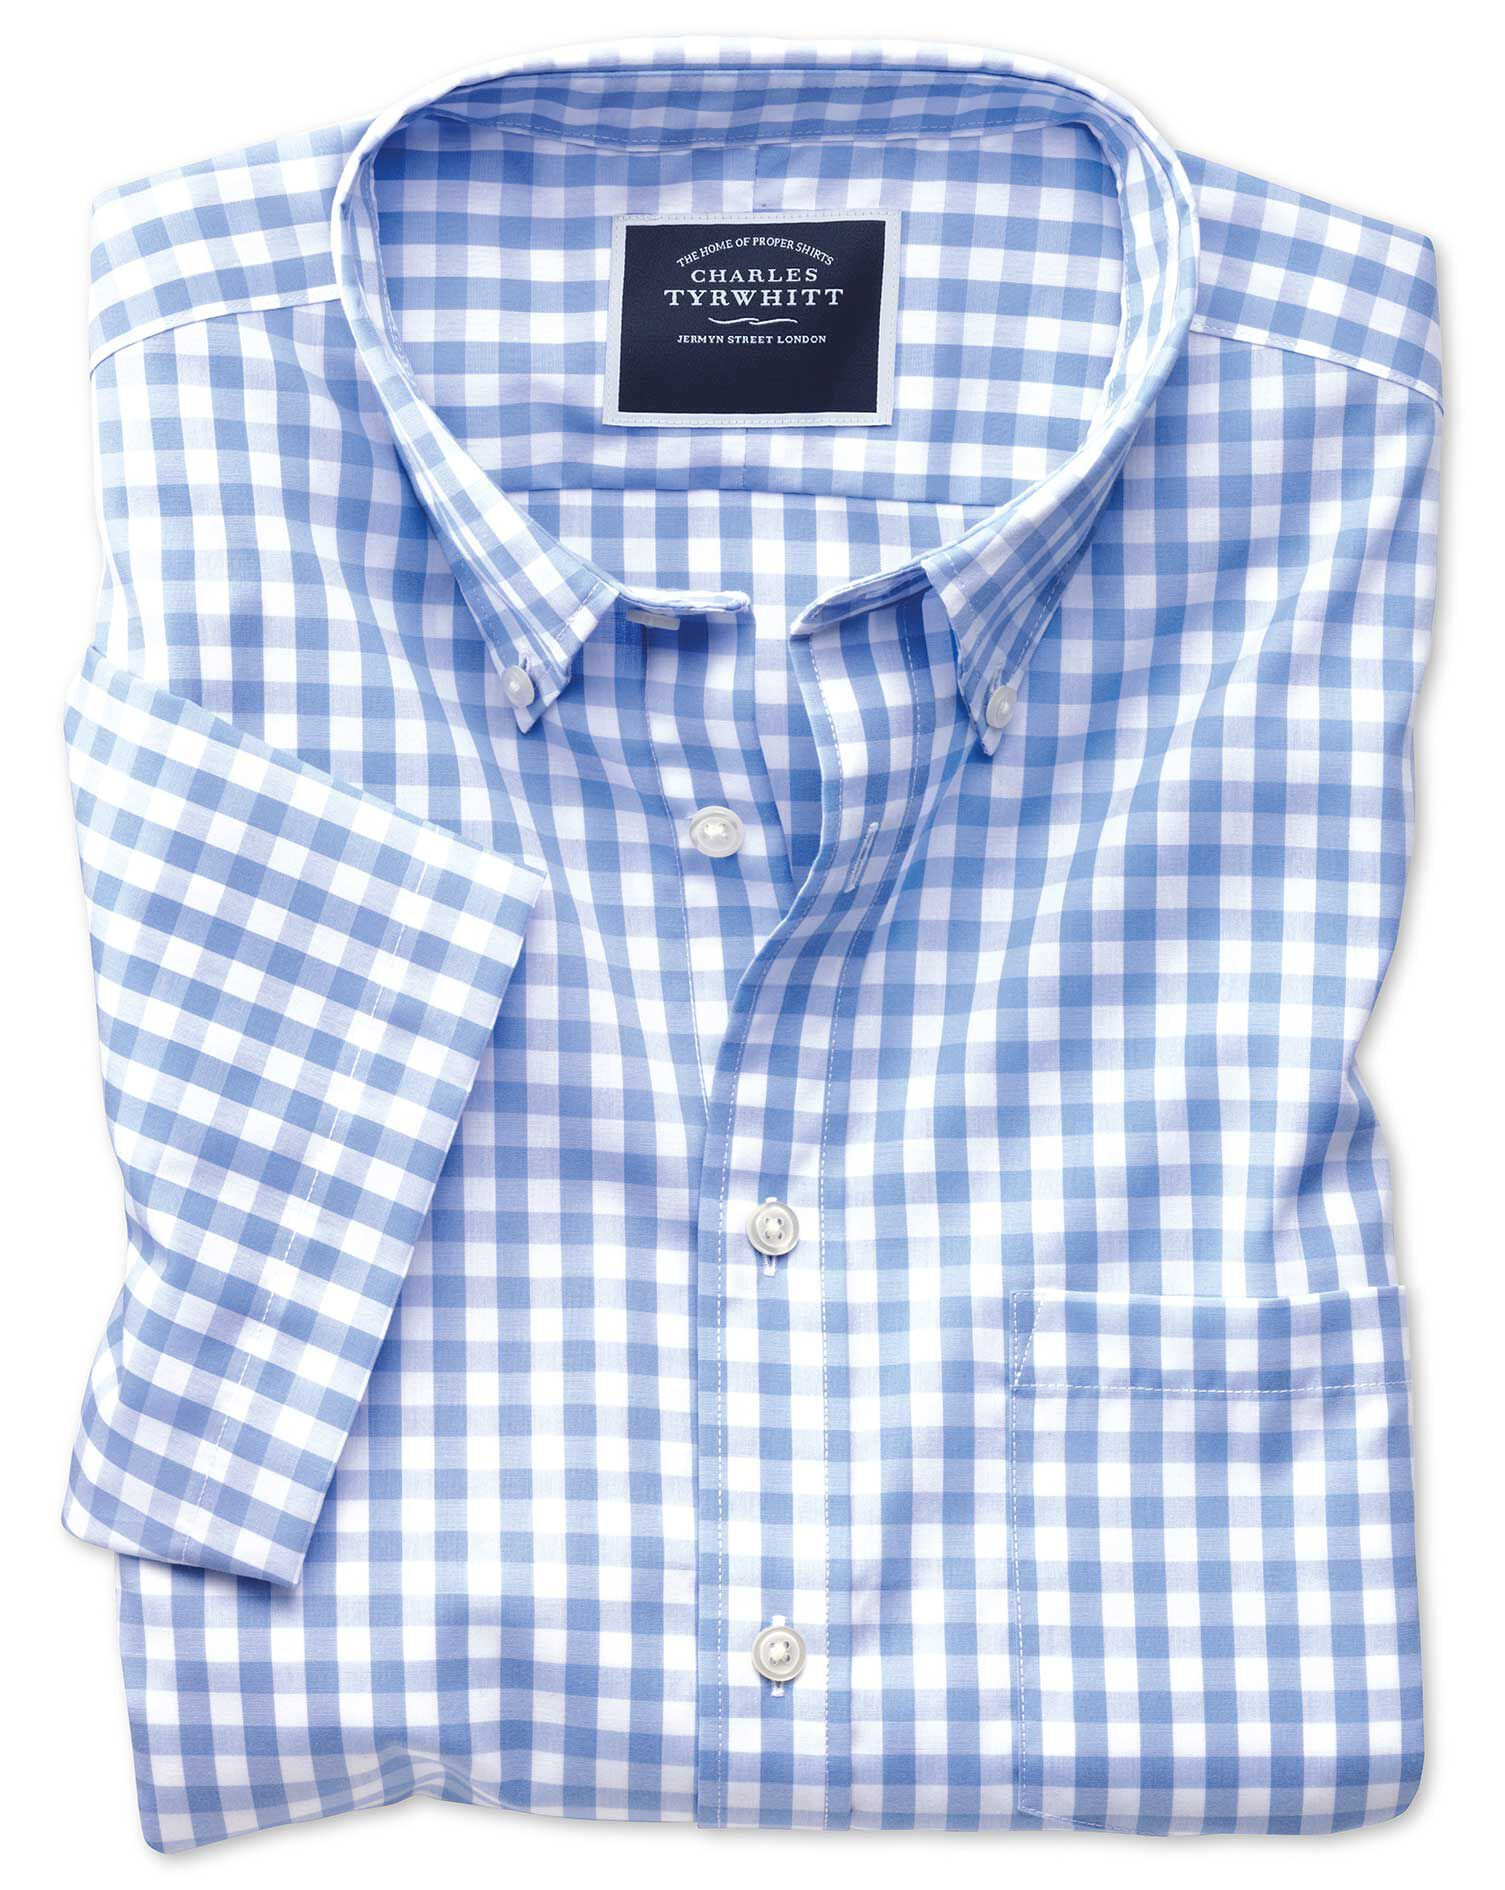 Classic Fit Button-Down Non-Iron Poplin Short Sleeve Sky Blue Gingham Cotton Shirt Single Cuff Size